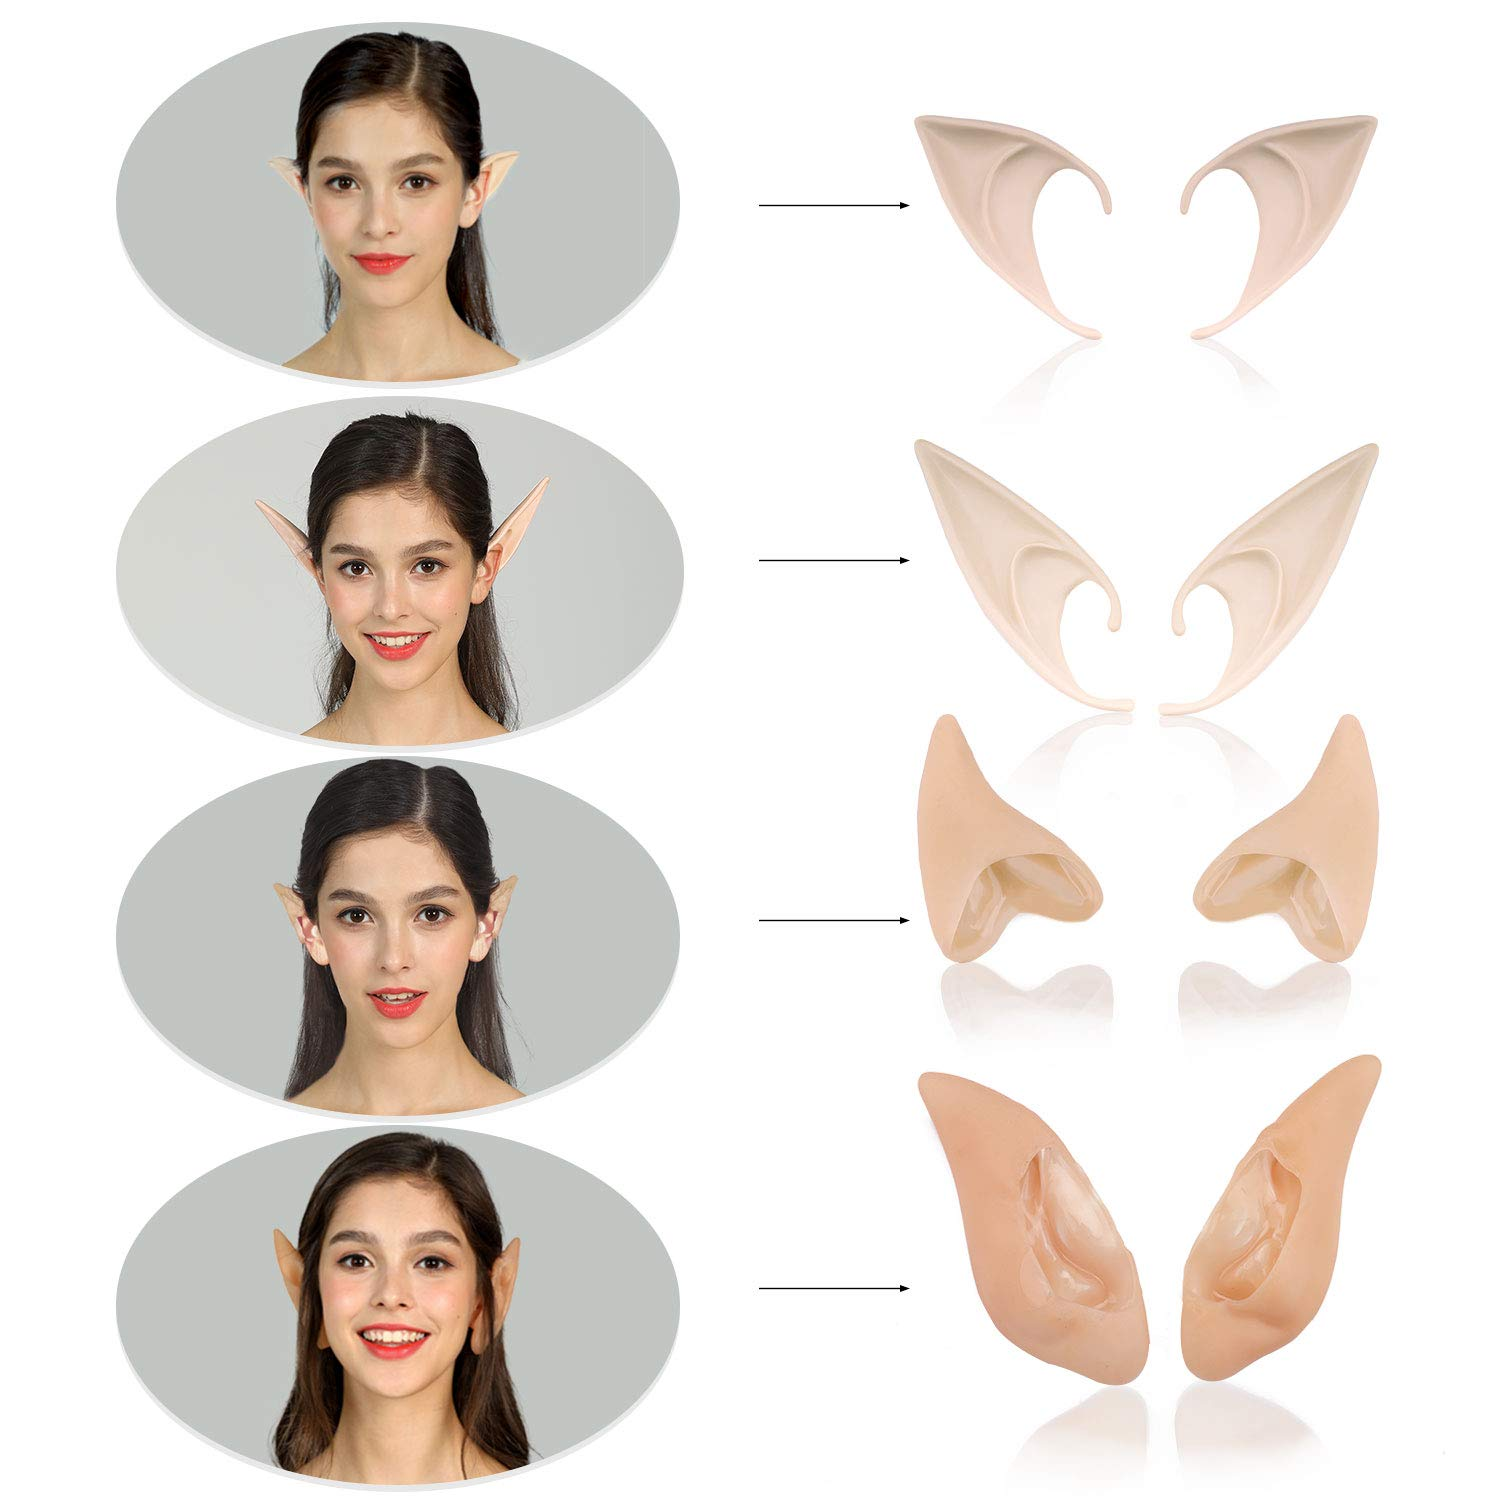 Phaxcoo 4 Pair Cosplay Fairy Pixie Elf Ears Anime Halloween Elven Ears Goblin Party Dress Up Costumes Accessories by Phaxcoo